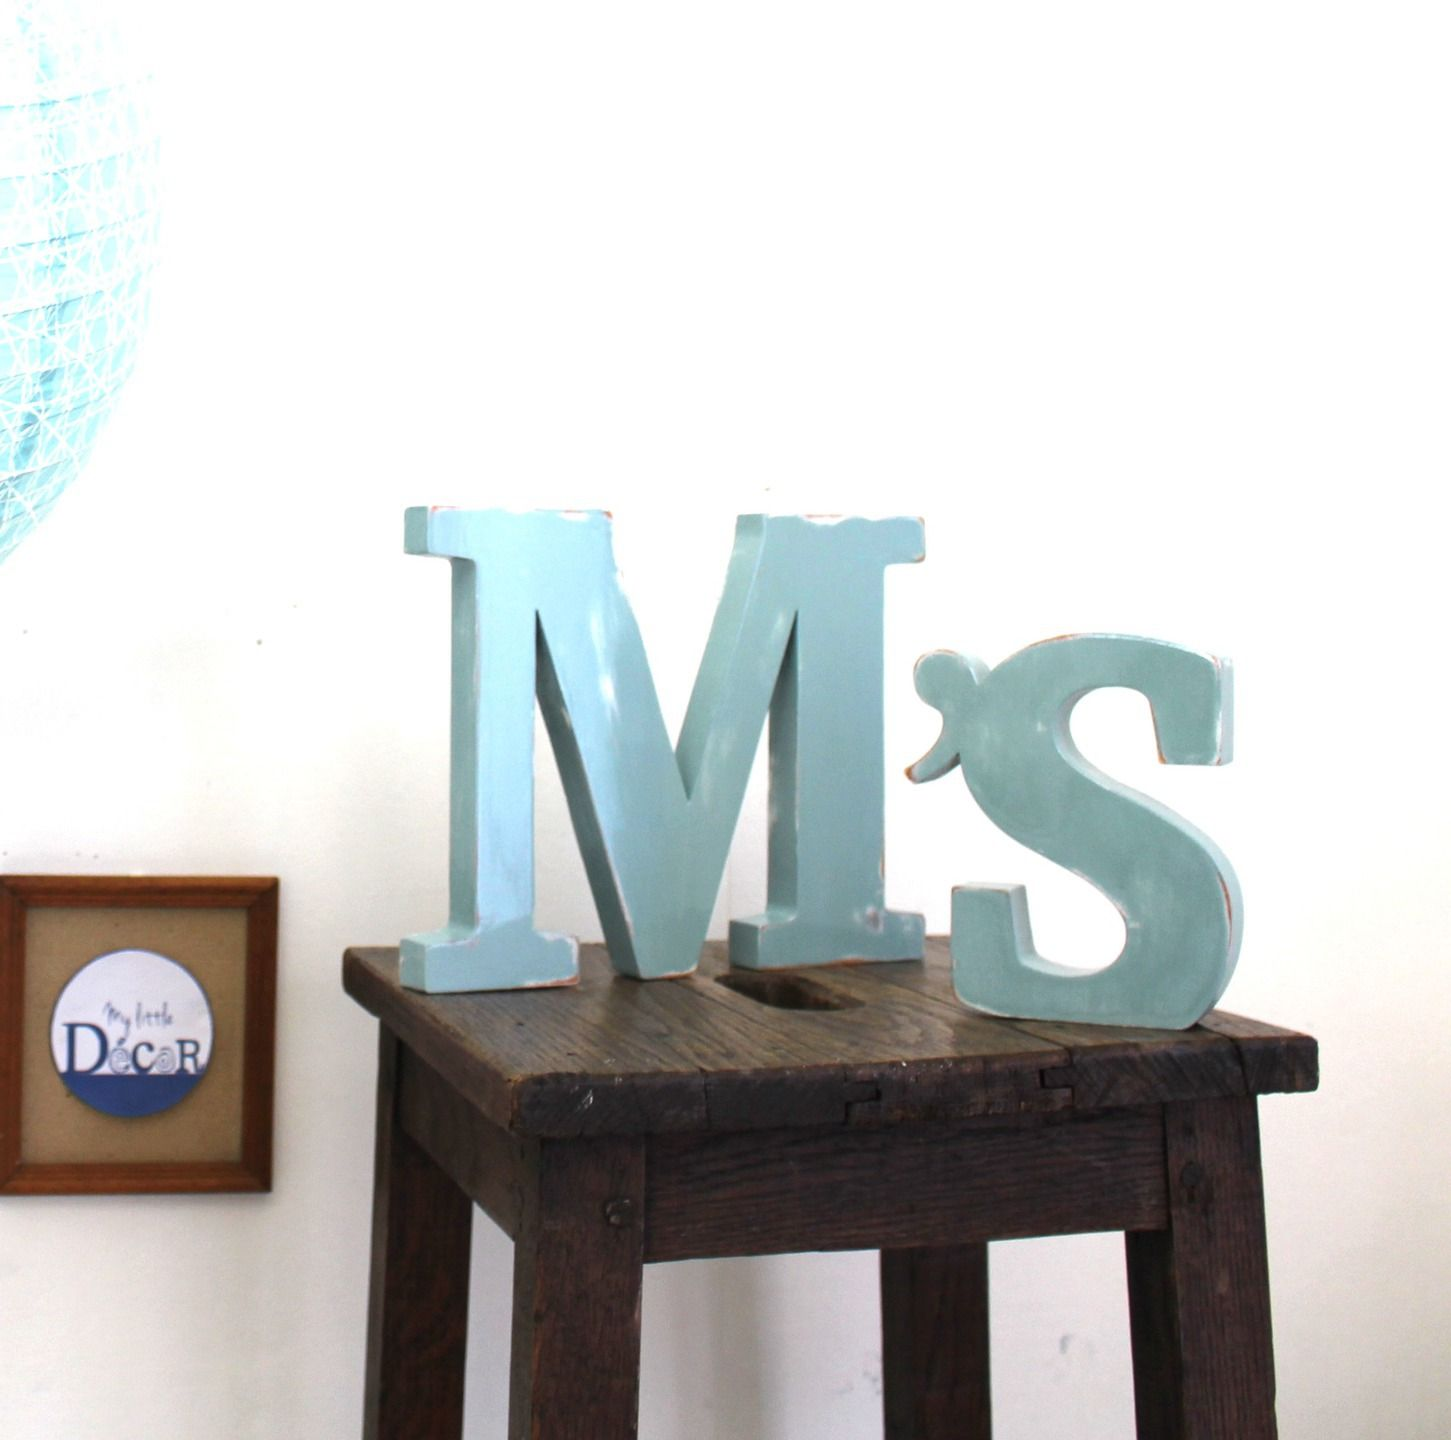 lettres en bois m 39 s poser bleu baltique mariage. Black Bedroom Furniture Sets. Home Design Ideas